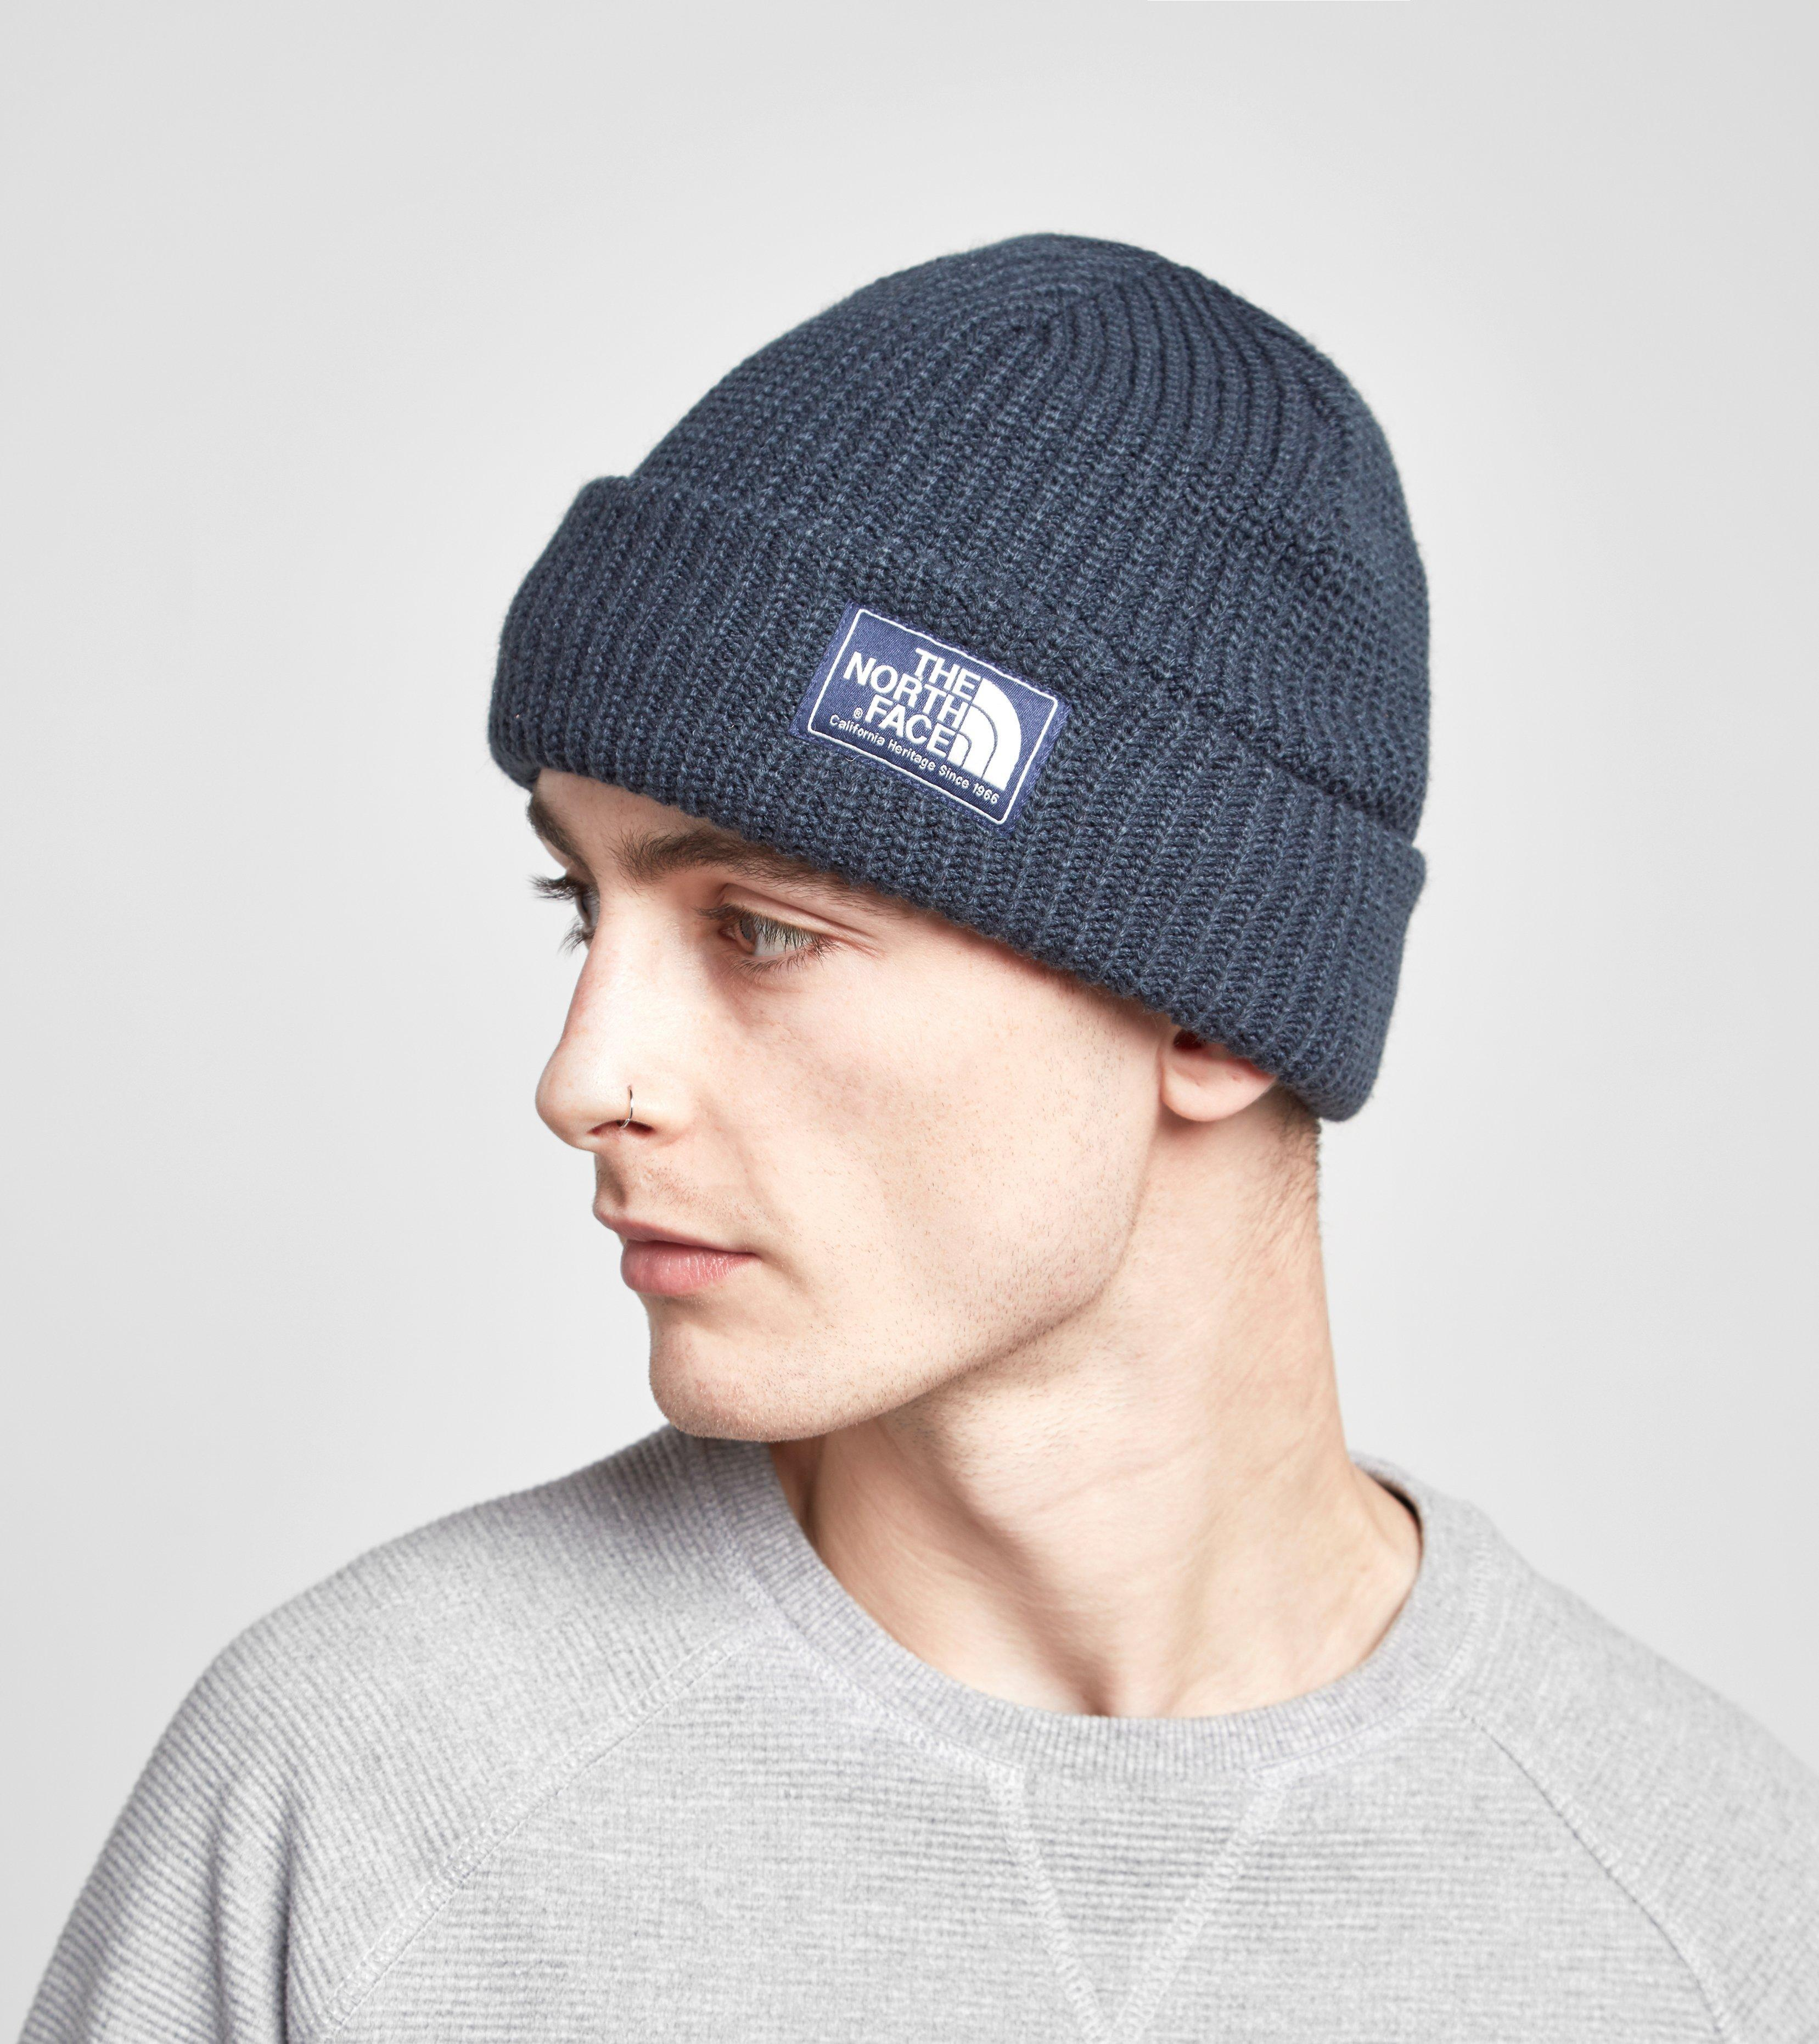 78209e7391b The North Face Salty Dog Beanie G Unisex Hat Navy in Blue for Men - Lyst